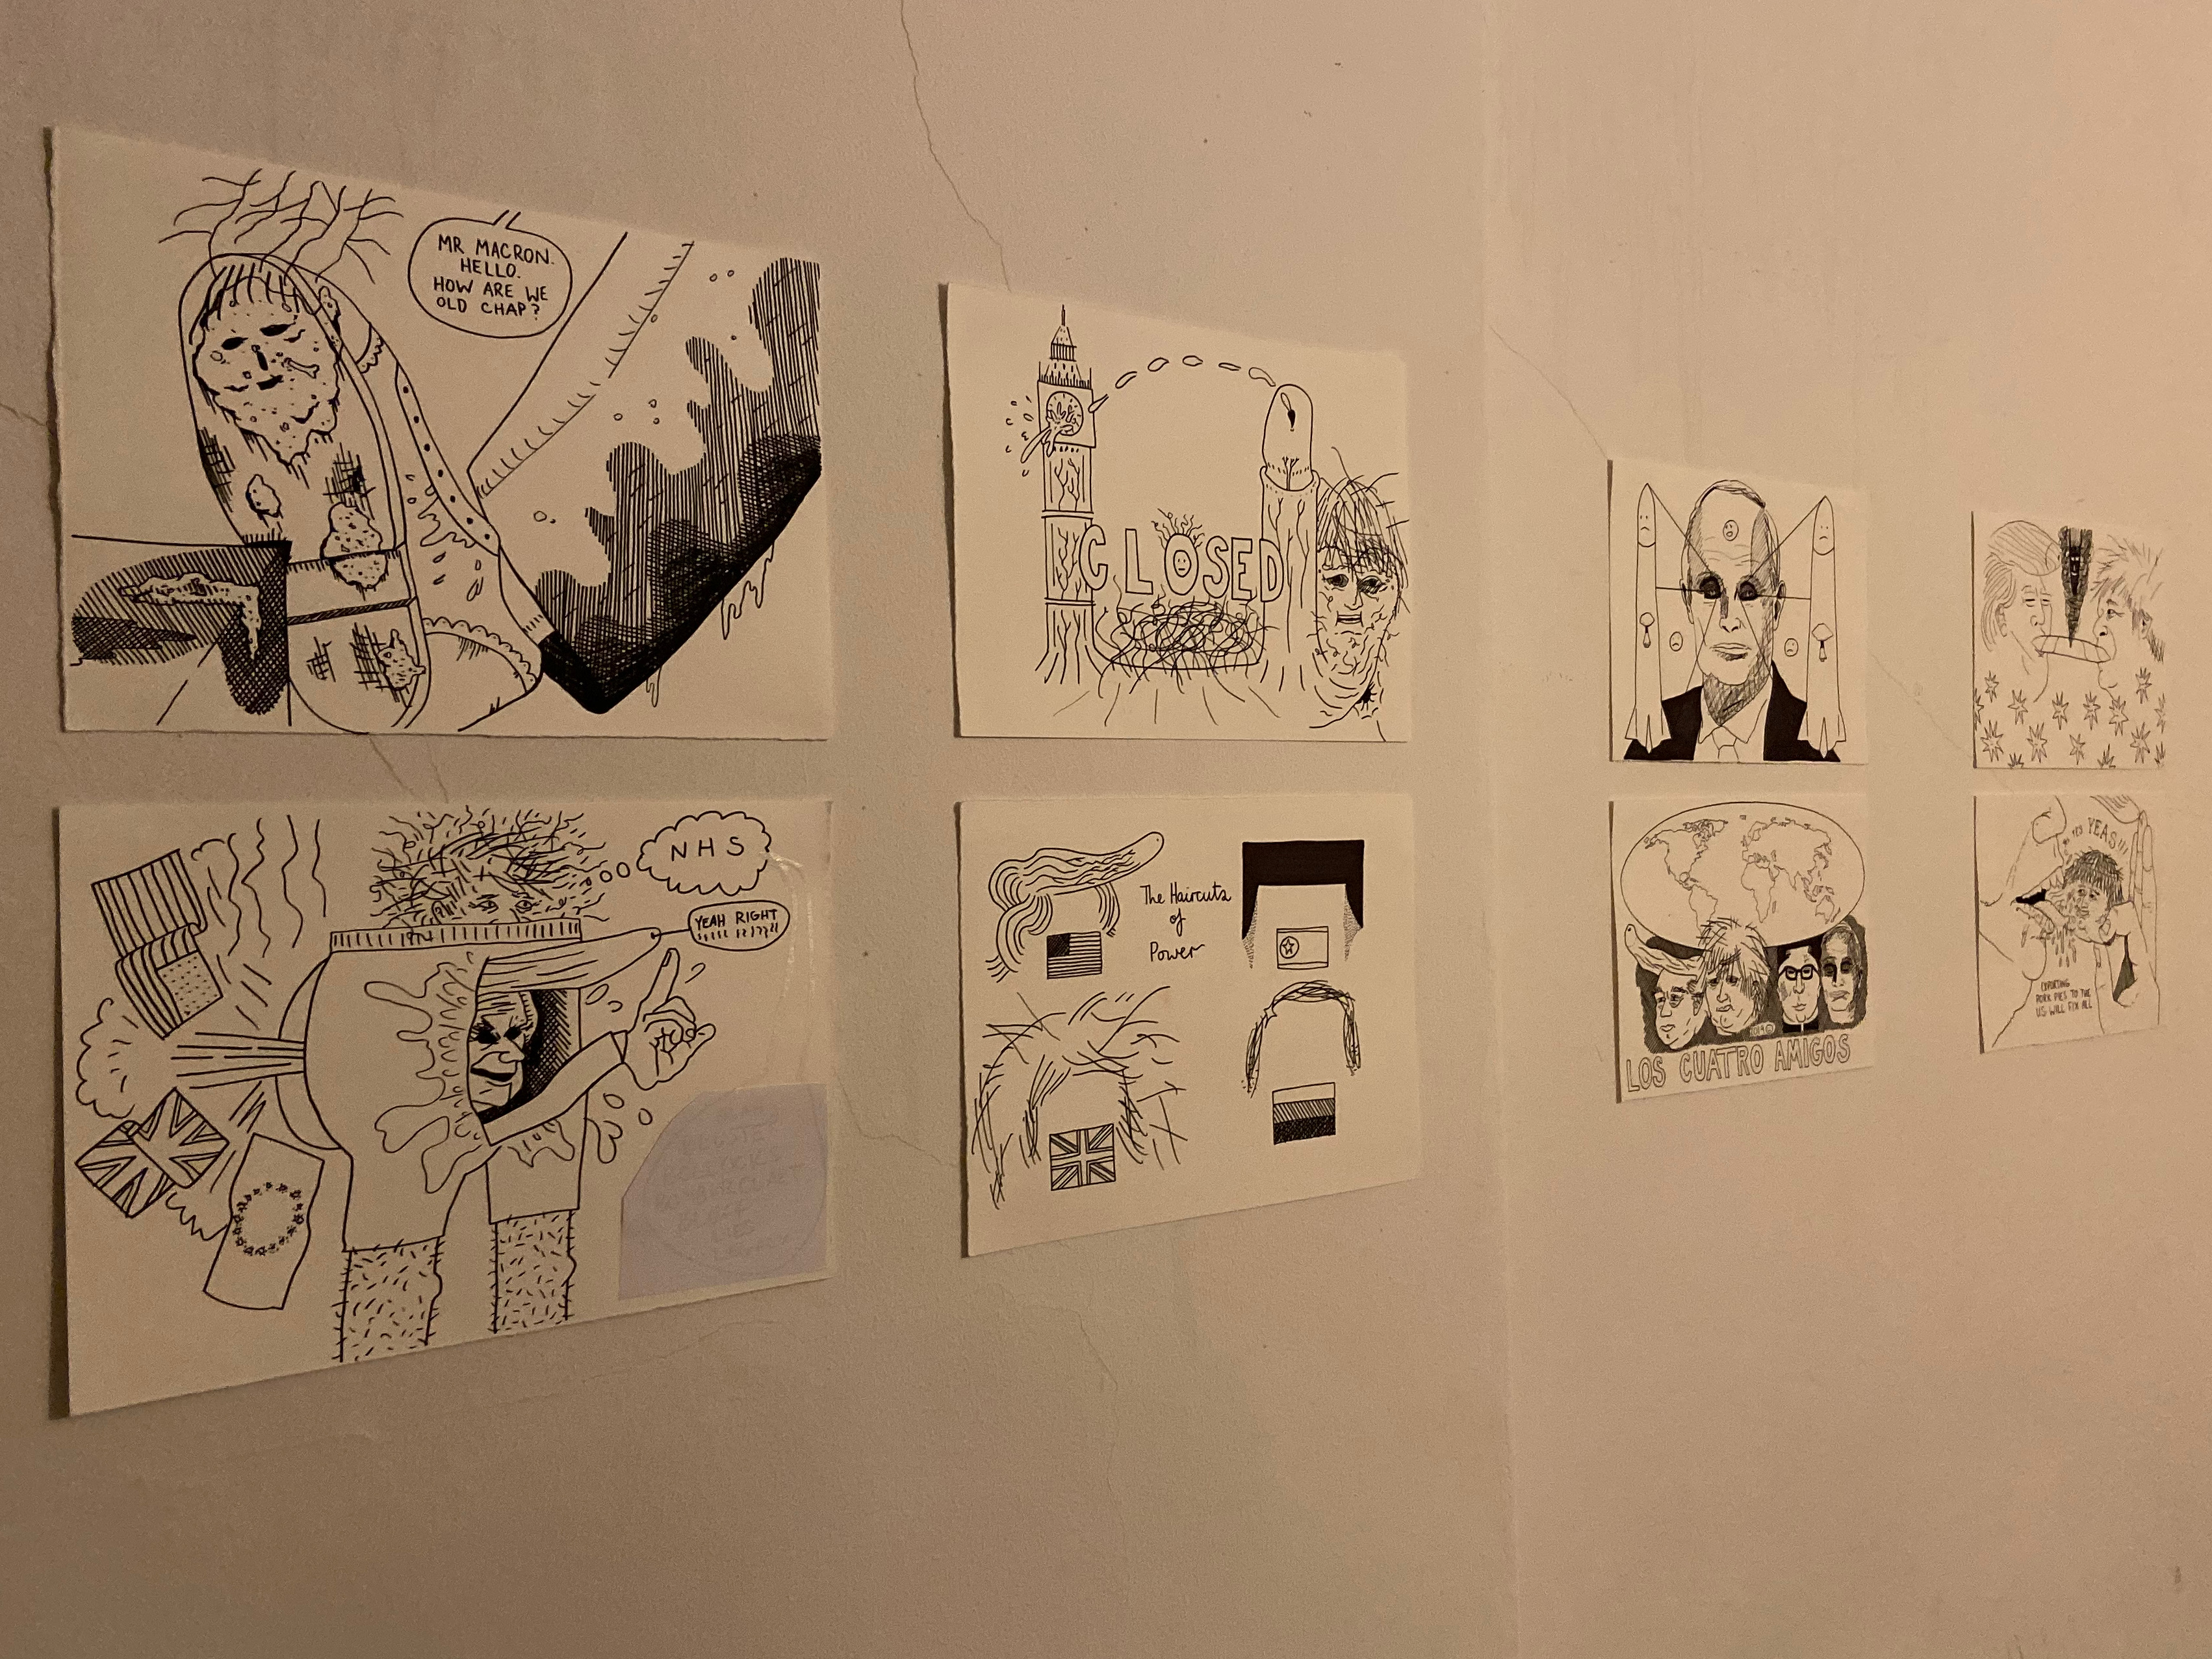 Caricatures are drawn on small pieces of paper and stuck on a toilet wall